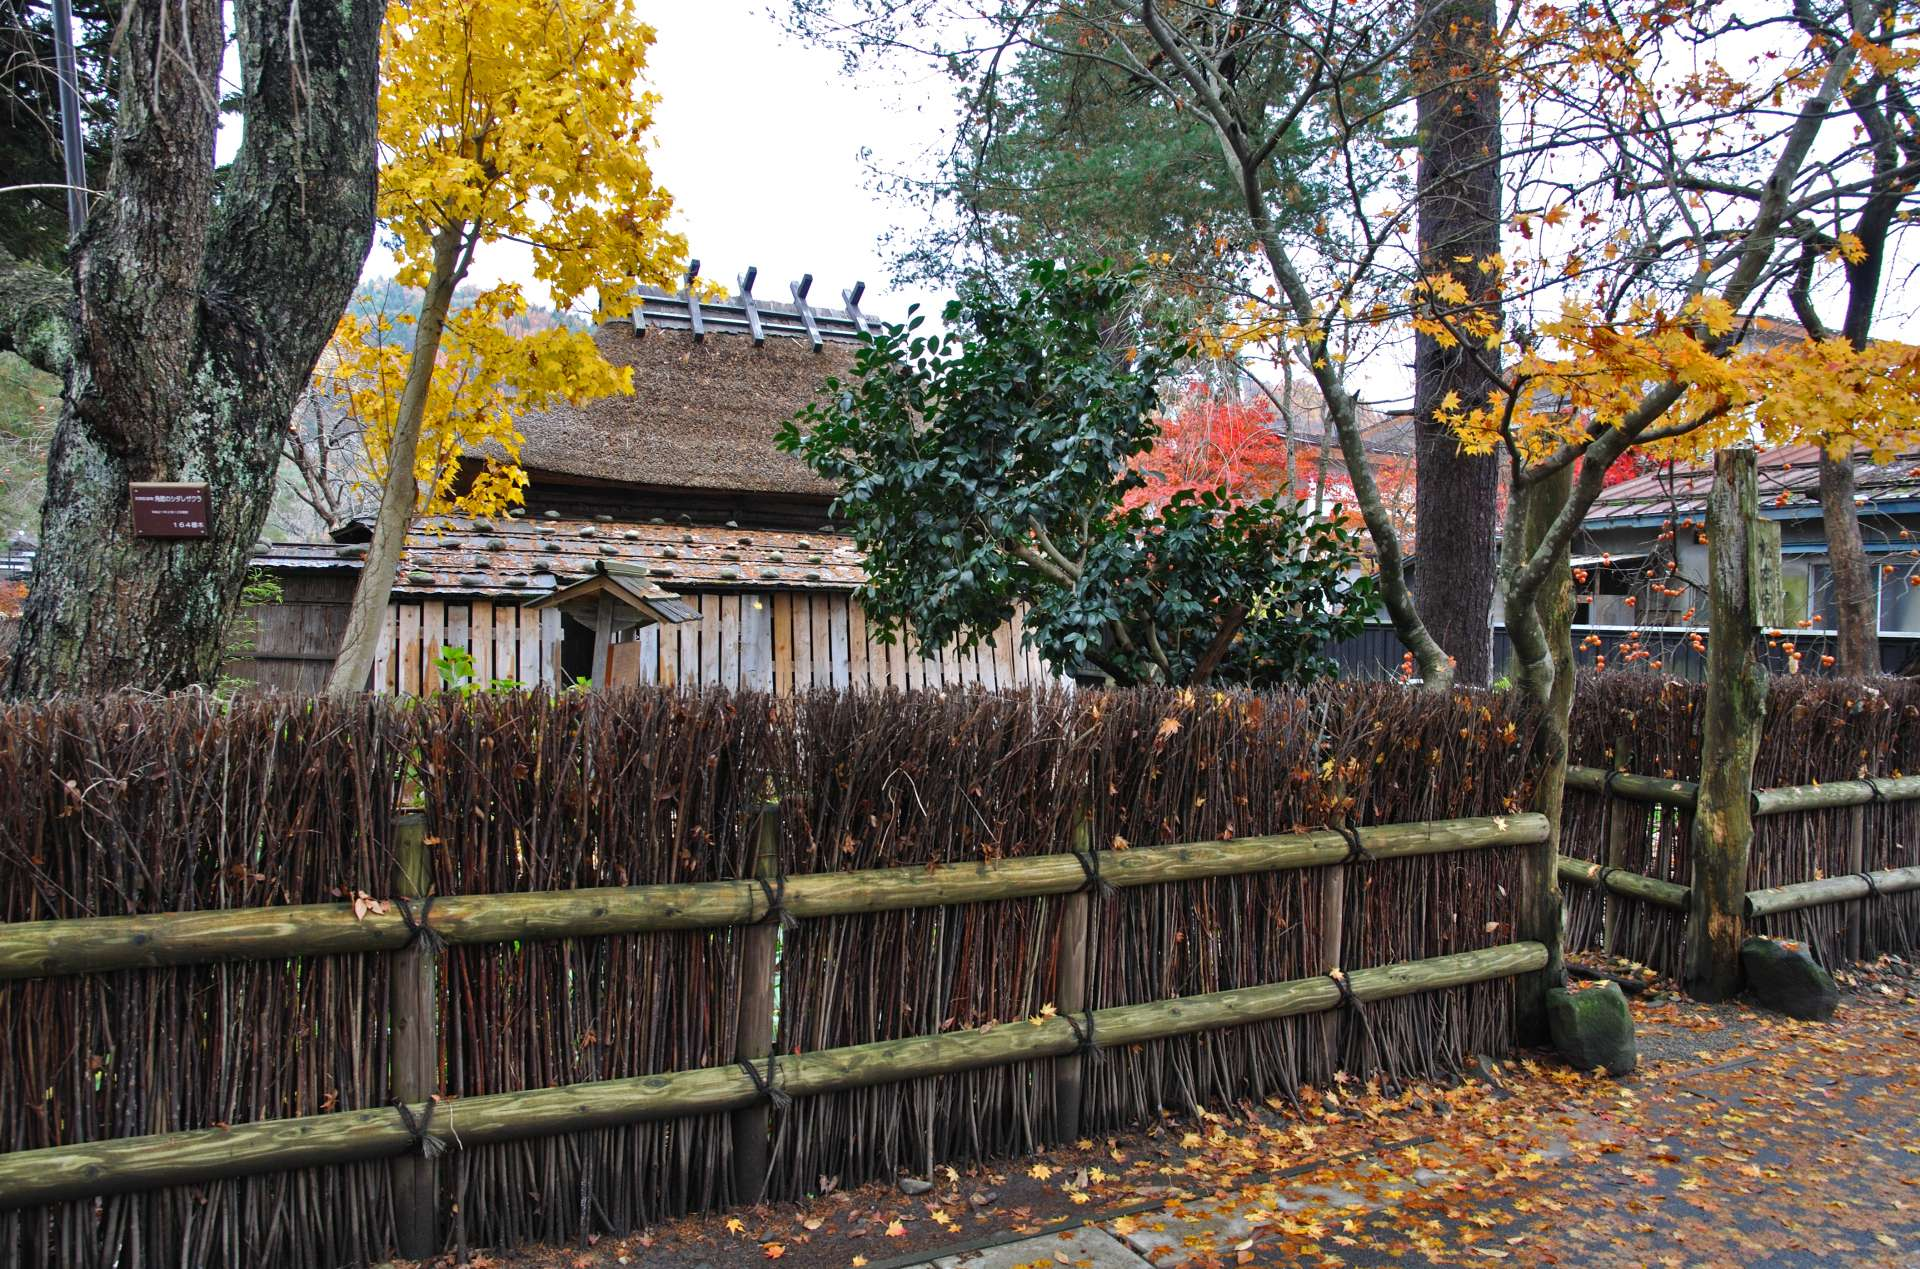 Fence wall and fall foliage